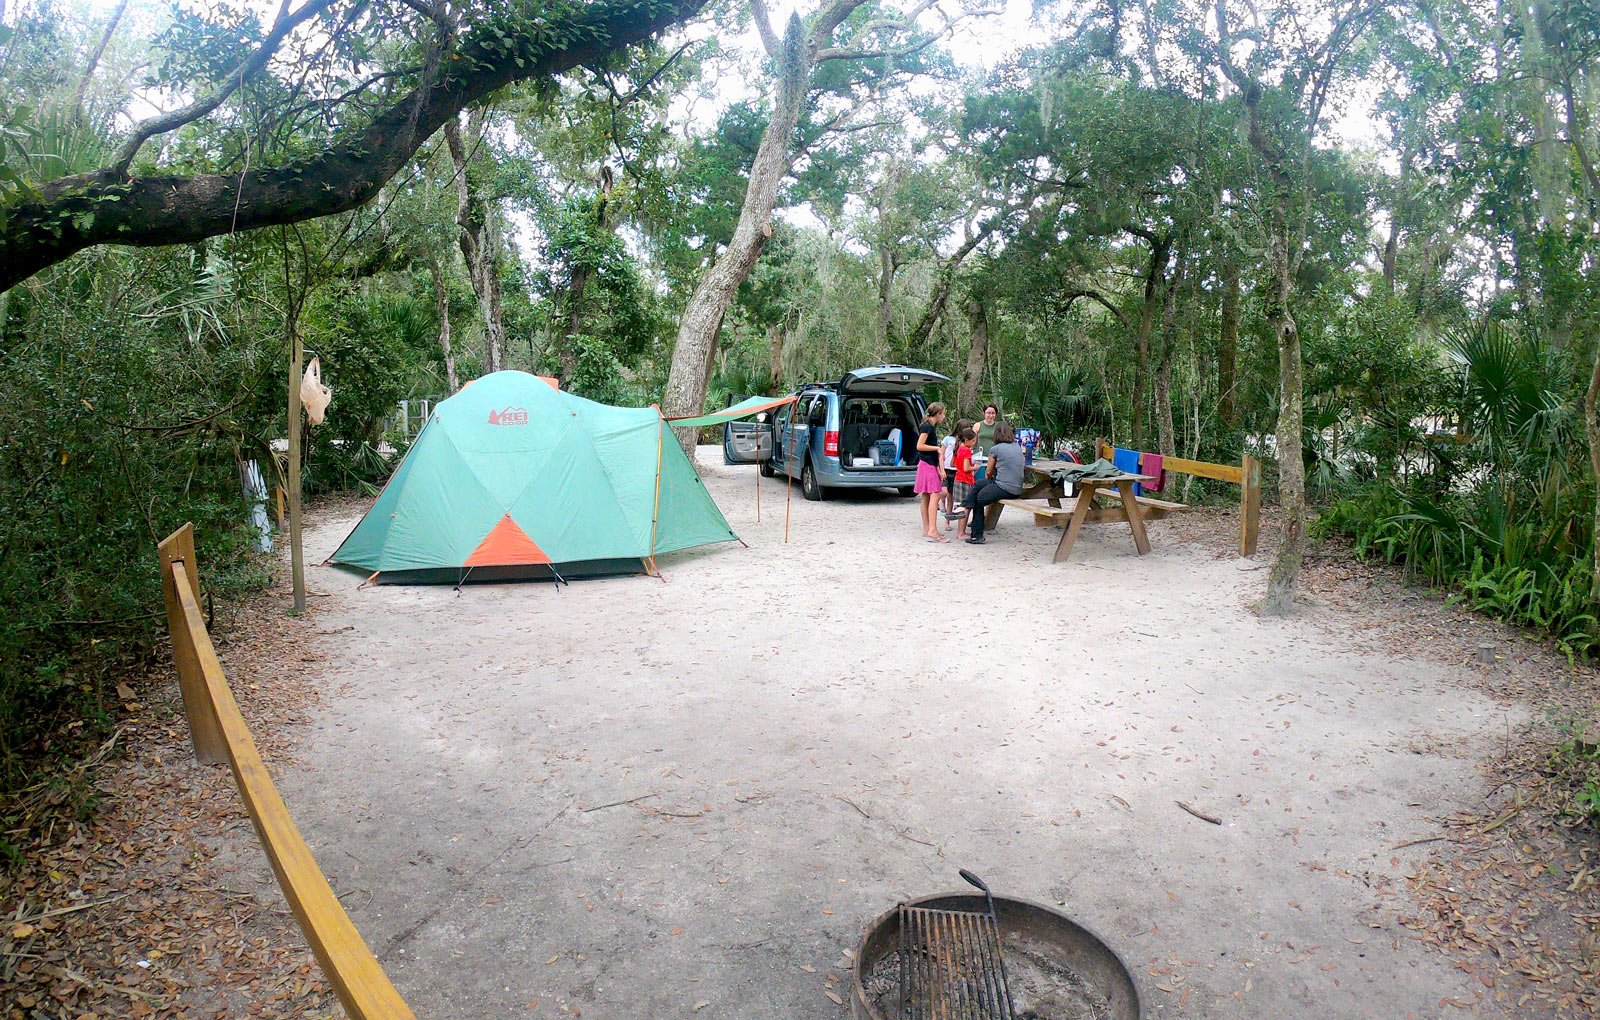 Green REI tent camping set up with van and family in spacious campsite in Anastasia State Park, Florida under canopy of trees near Saint Augustine, Florida